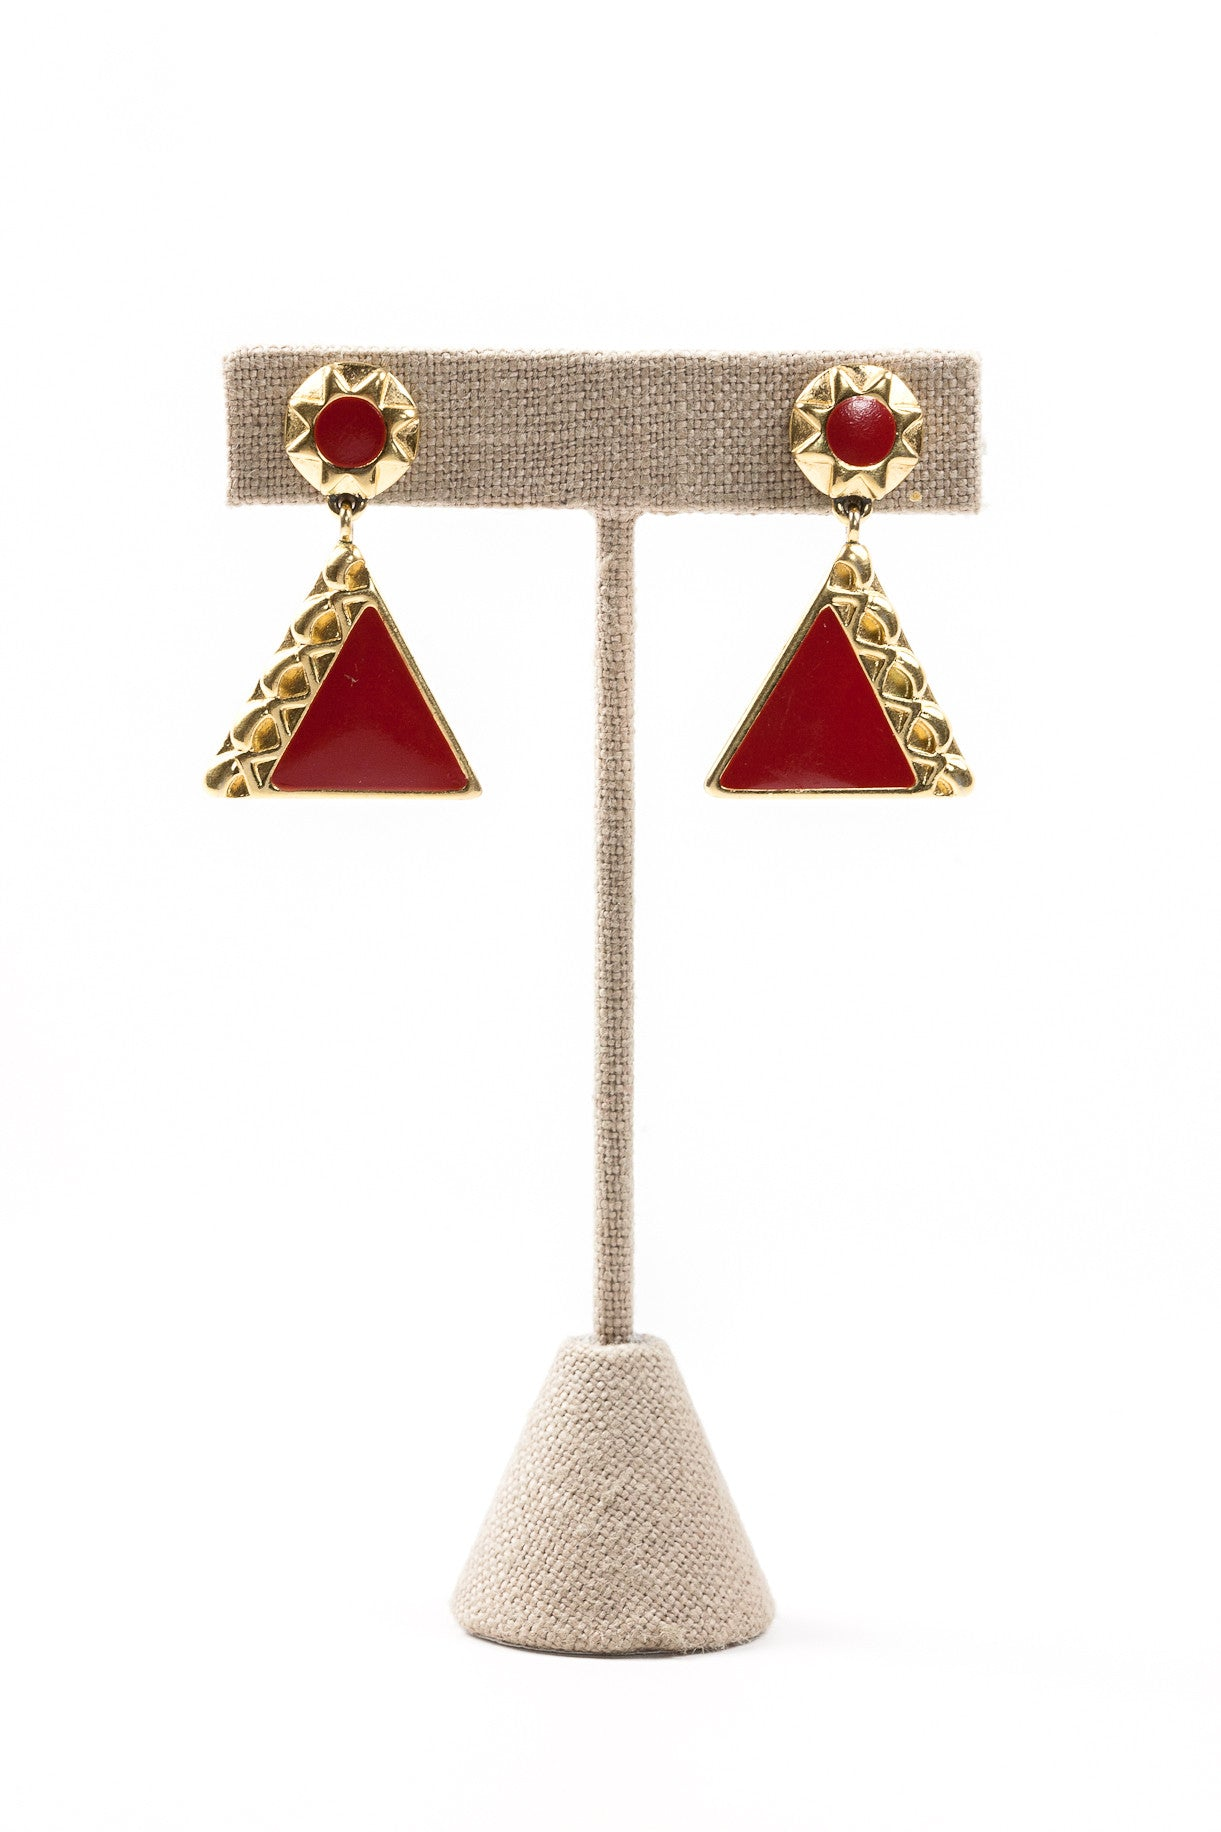 80's__Monet__Red Enamel Drop Earrings